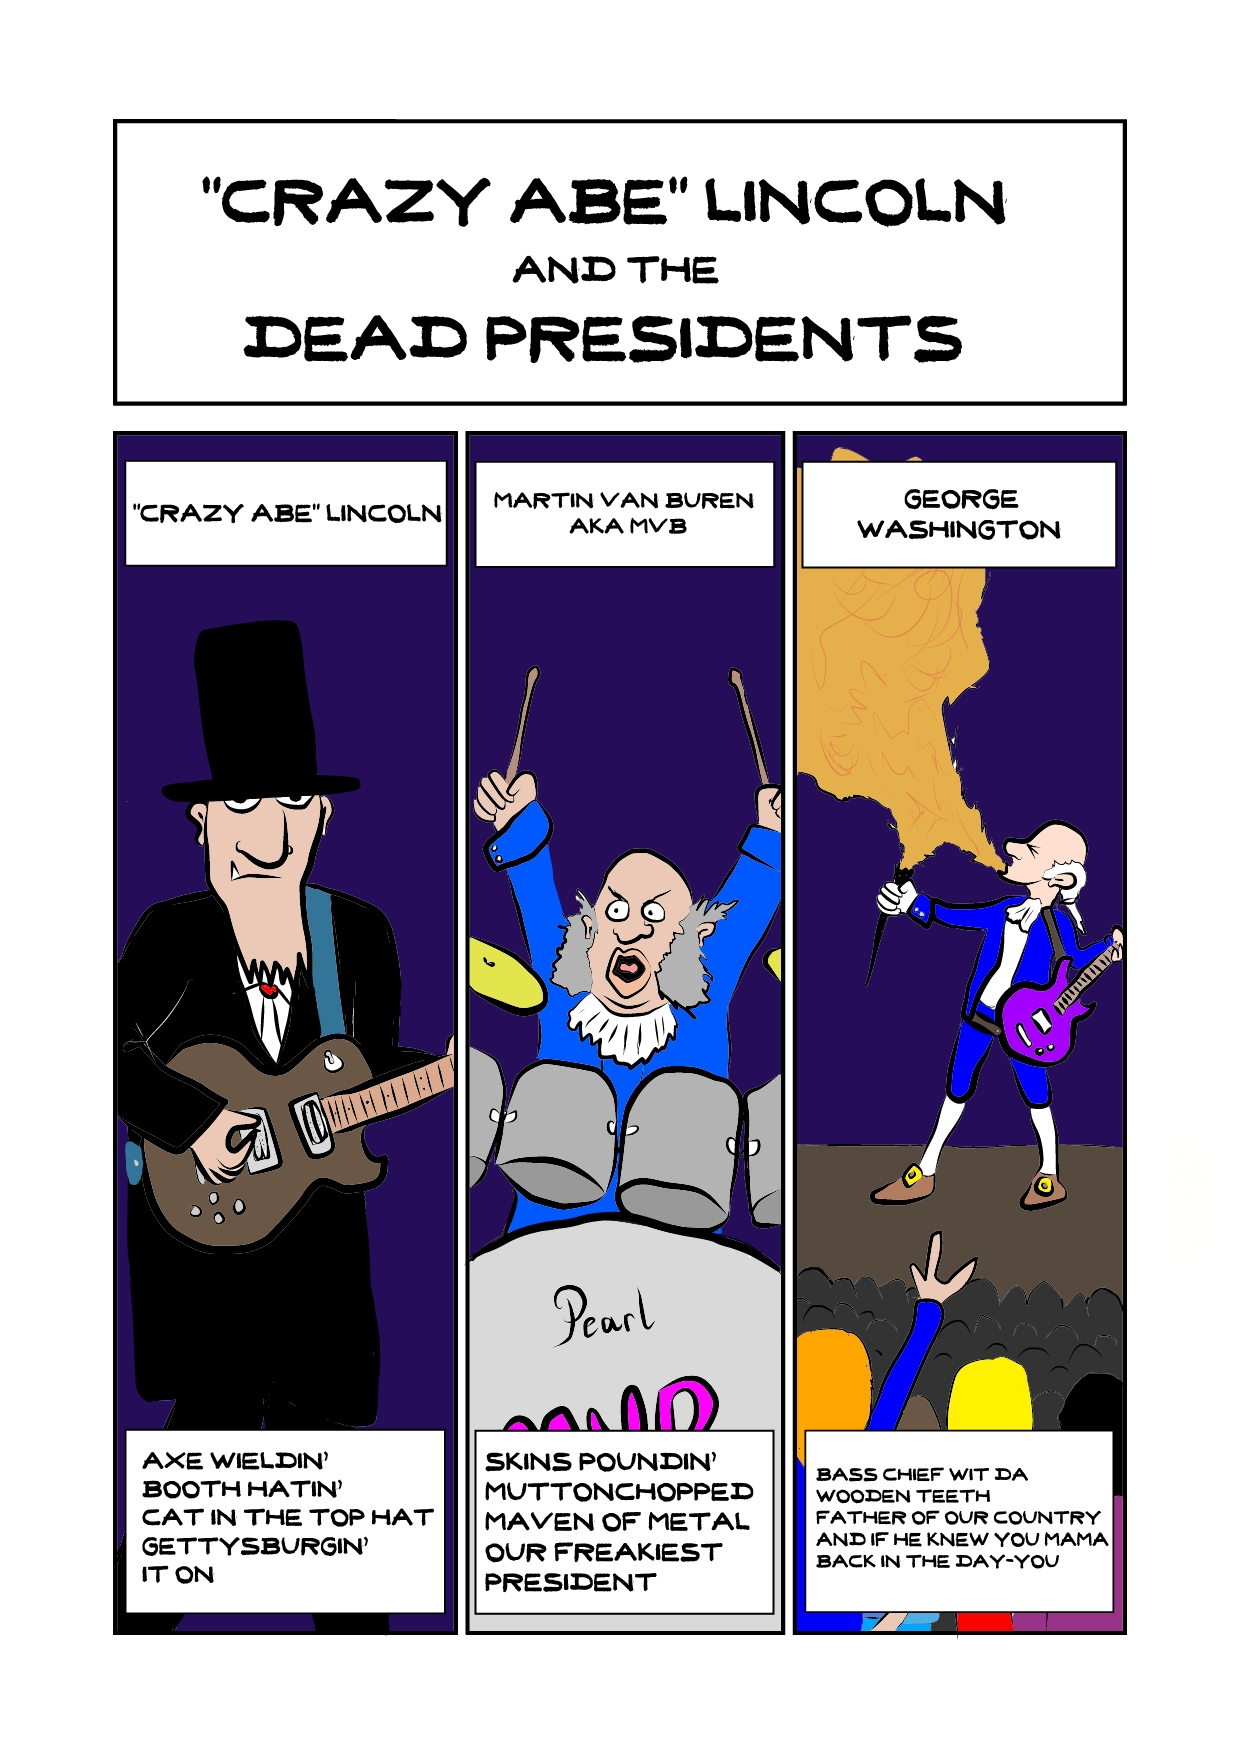 Crazy Abe Lincoln And The Dead Presidents